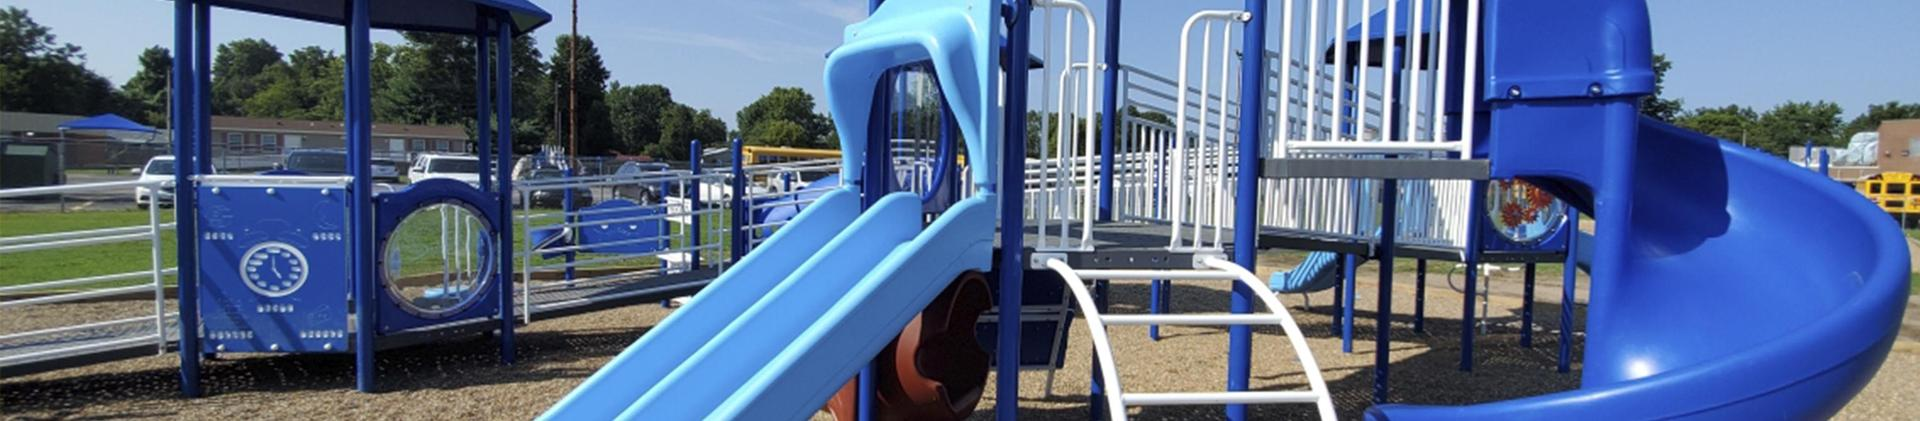 Accessible Playground Equipment at Hearnes Elementary